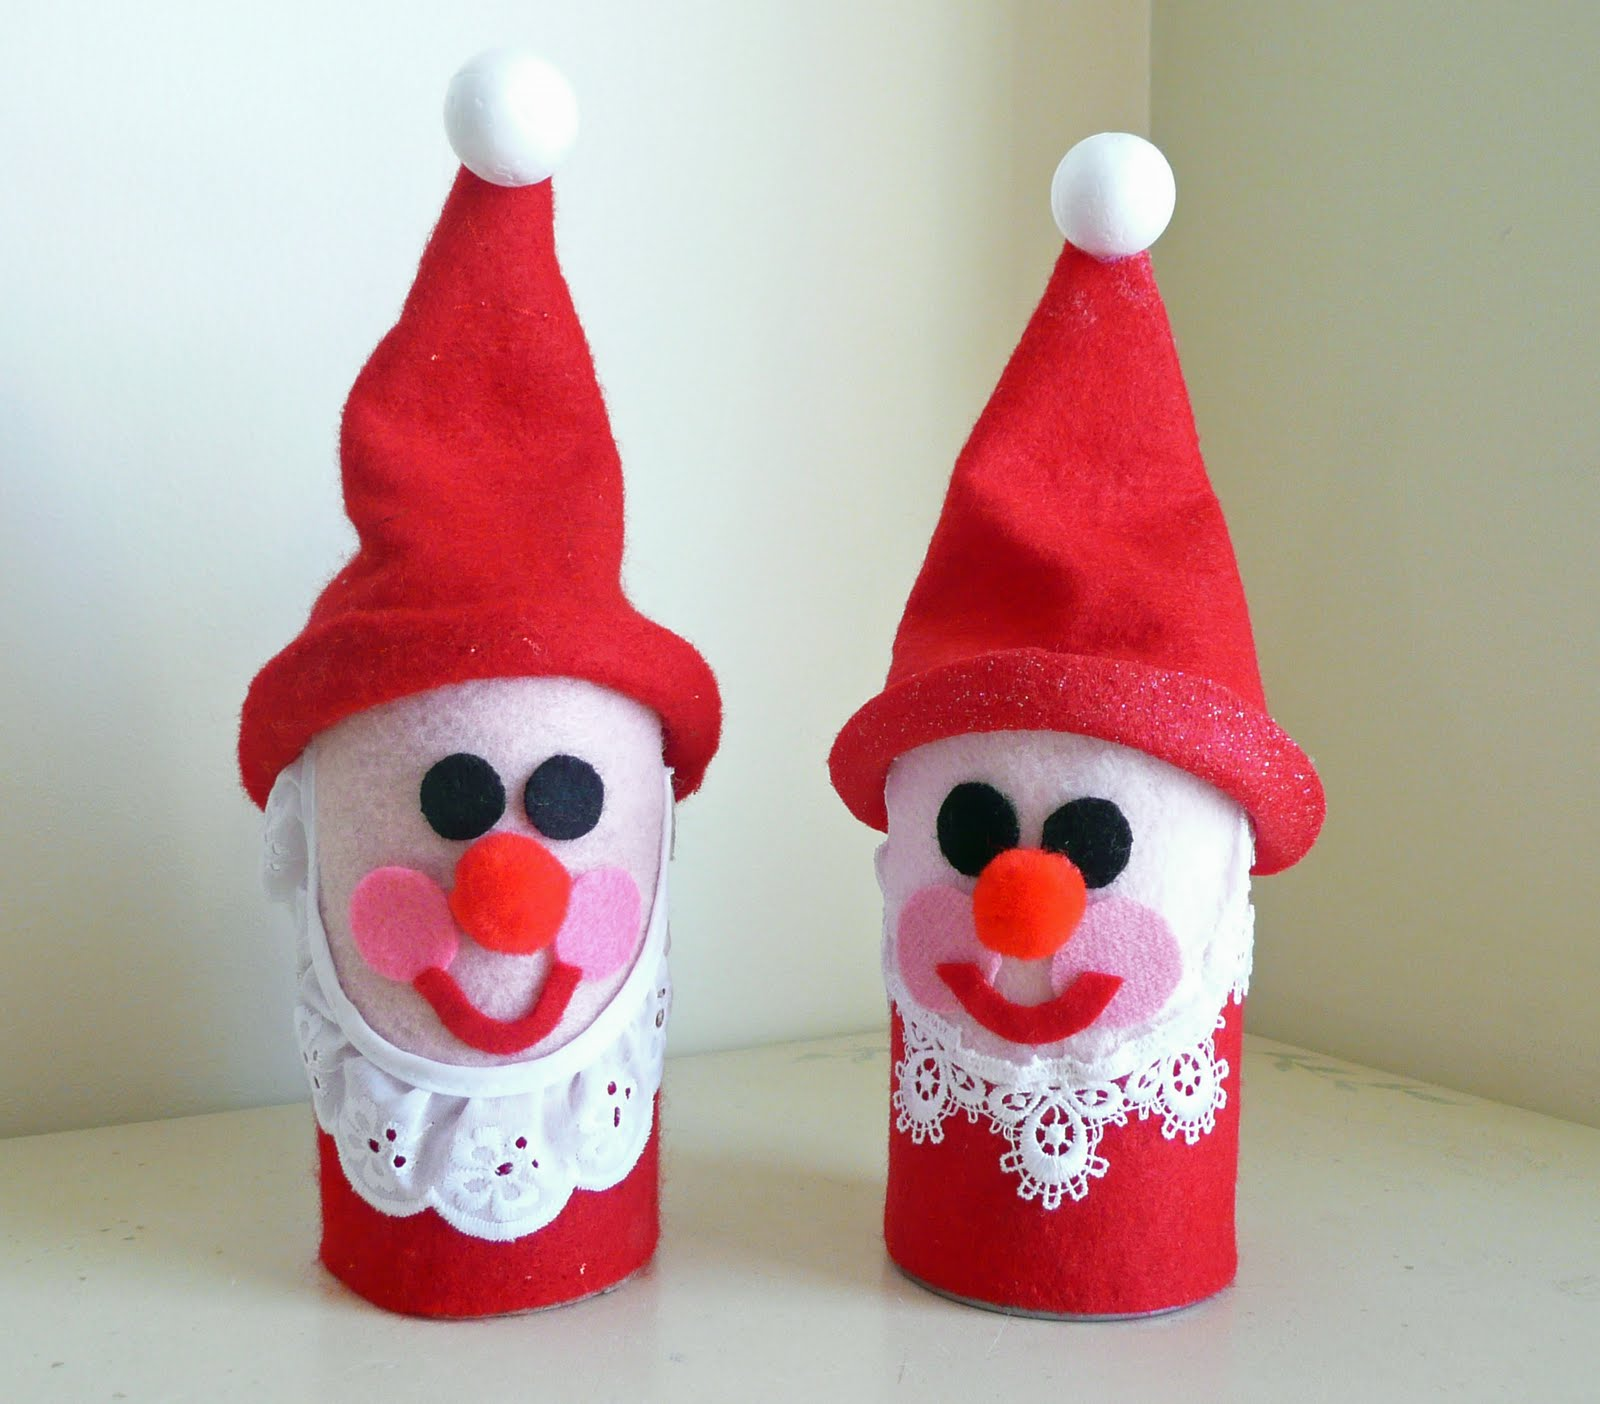 How to make your own christmas decorations - Use Toilet Paper Roll Or Juice Concentrate Can To Create Santa